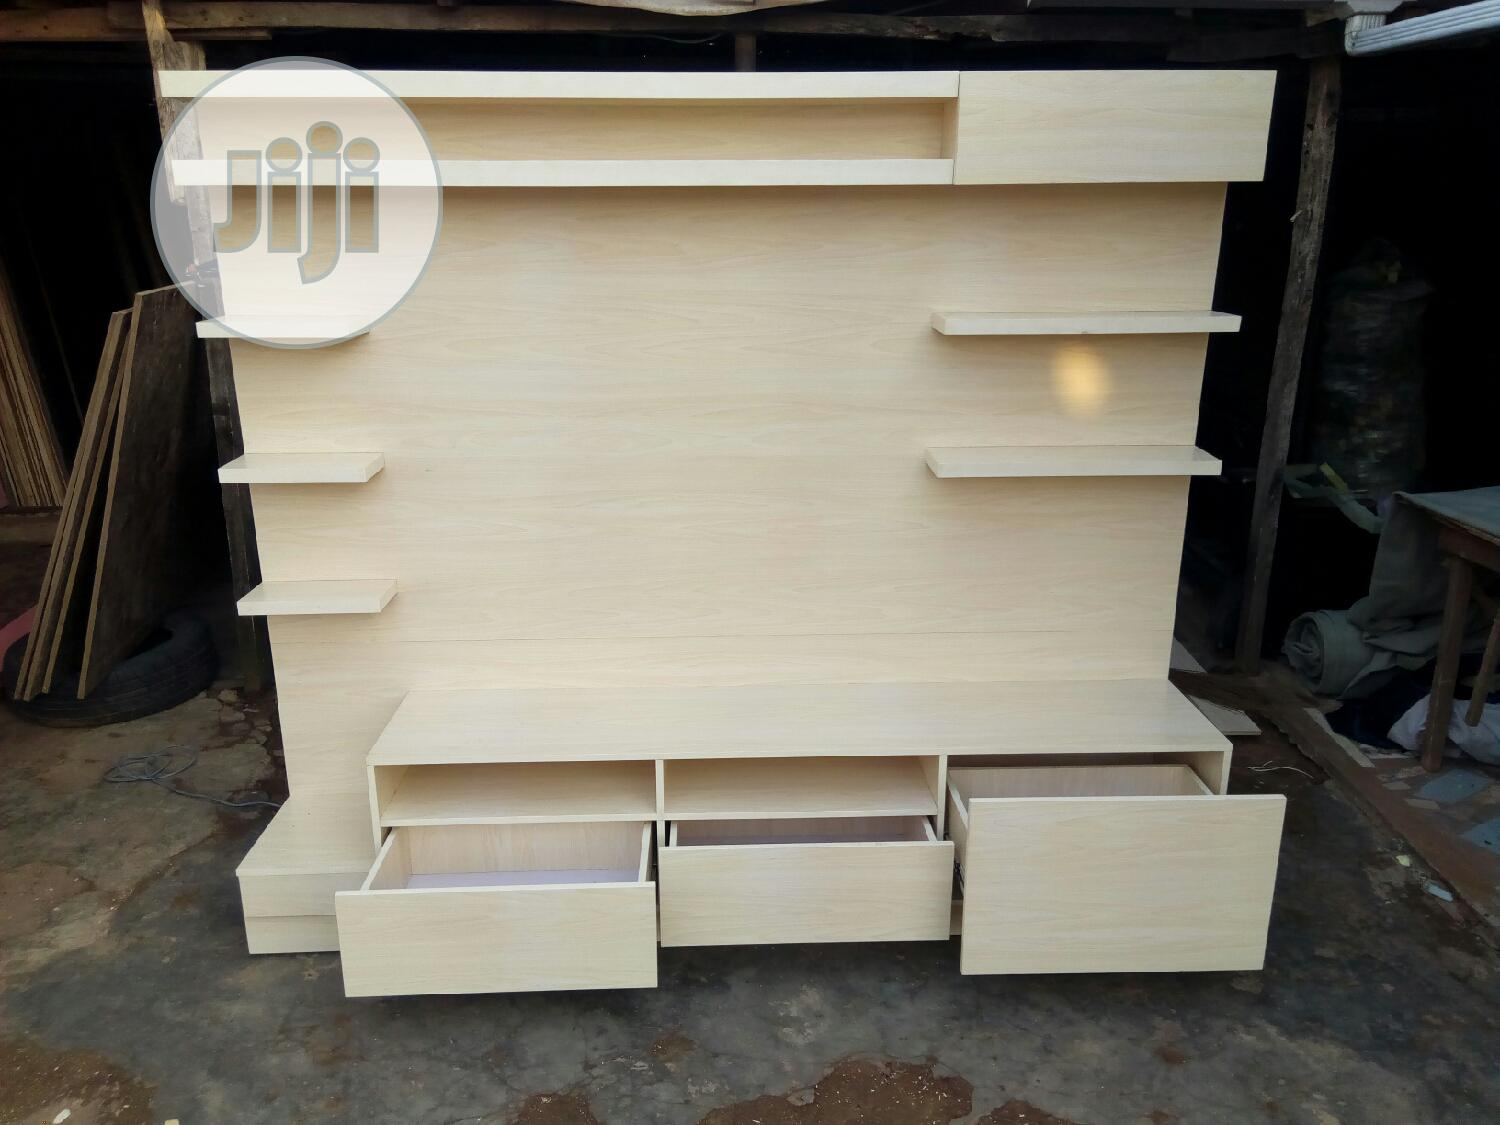 Vip Tv Stand With Hdf High Quality in Any Colors I Have | Furniture for sale in Lekki, Lagos State, Nigeria